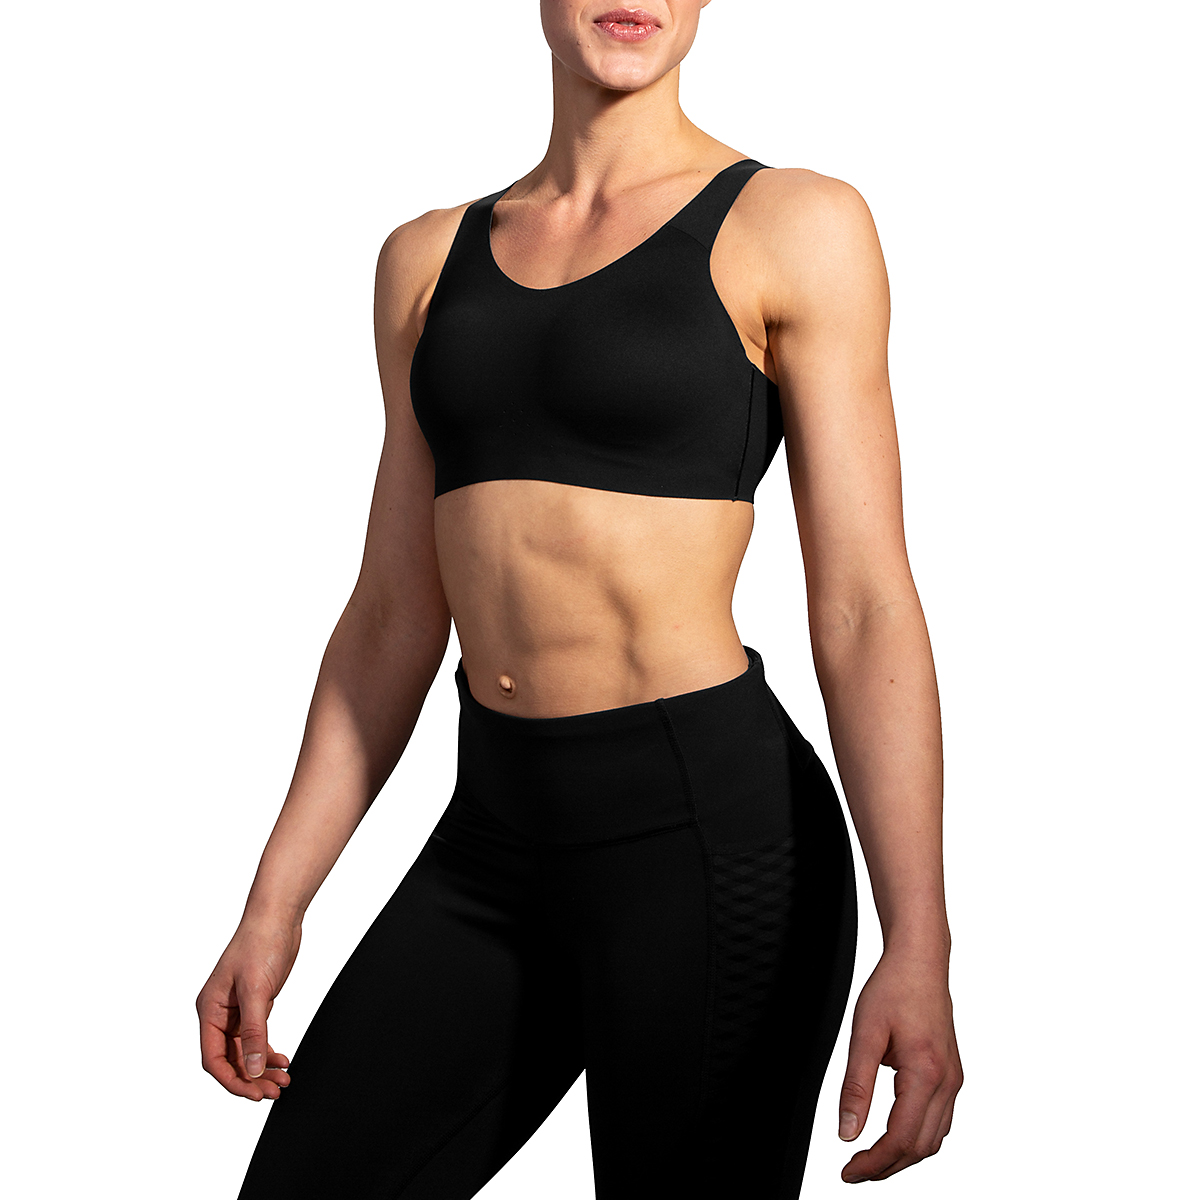 Women's Brooks Dare Scoopback Run Bra - Color: Black - Size: 34C/D, Black, large, image 2